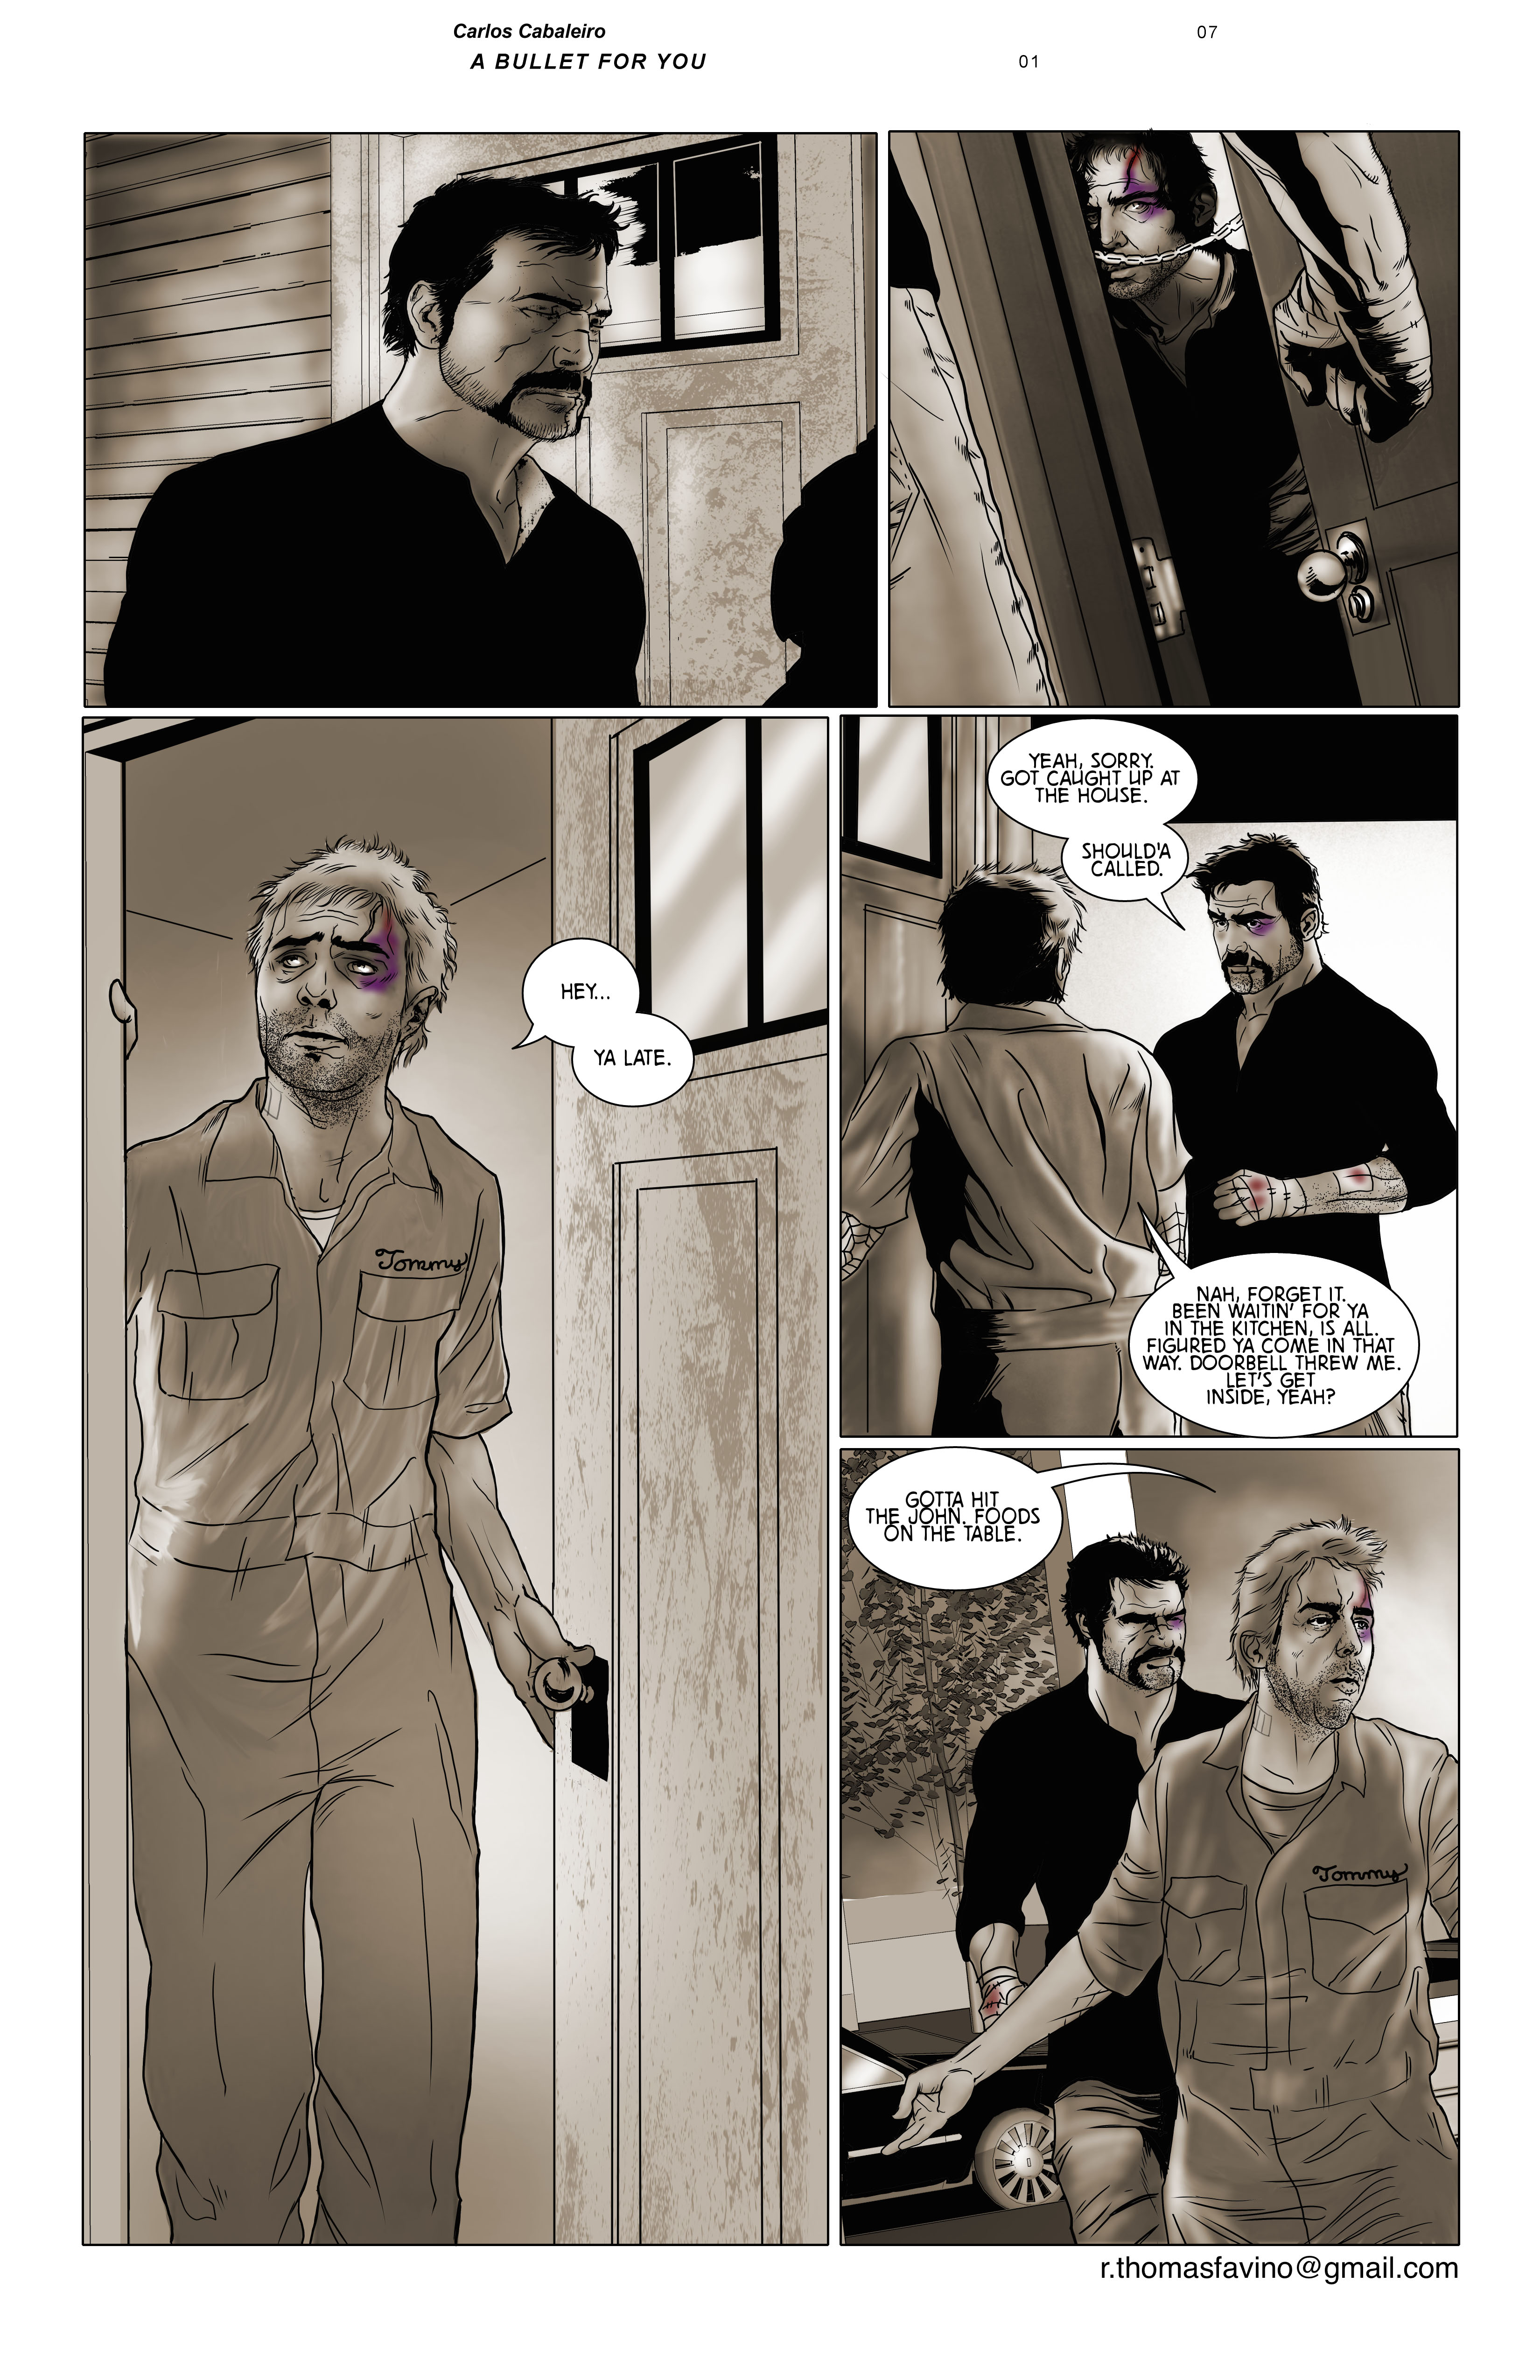 A Bullet for You #1 Page 7